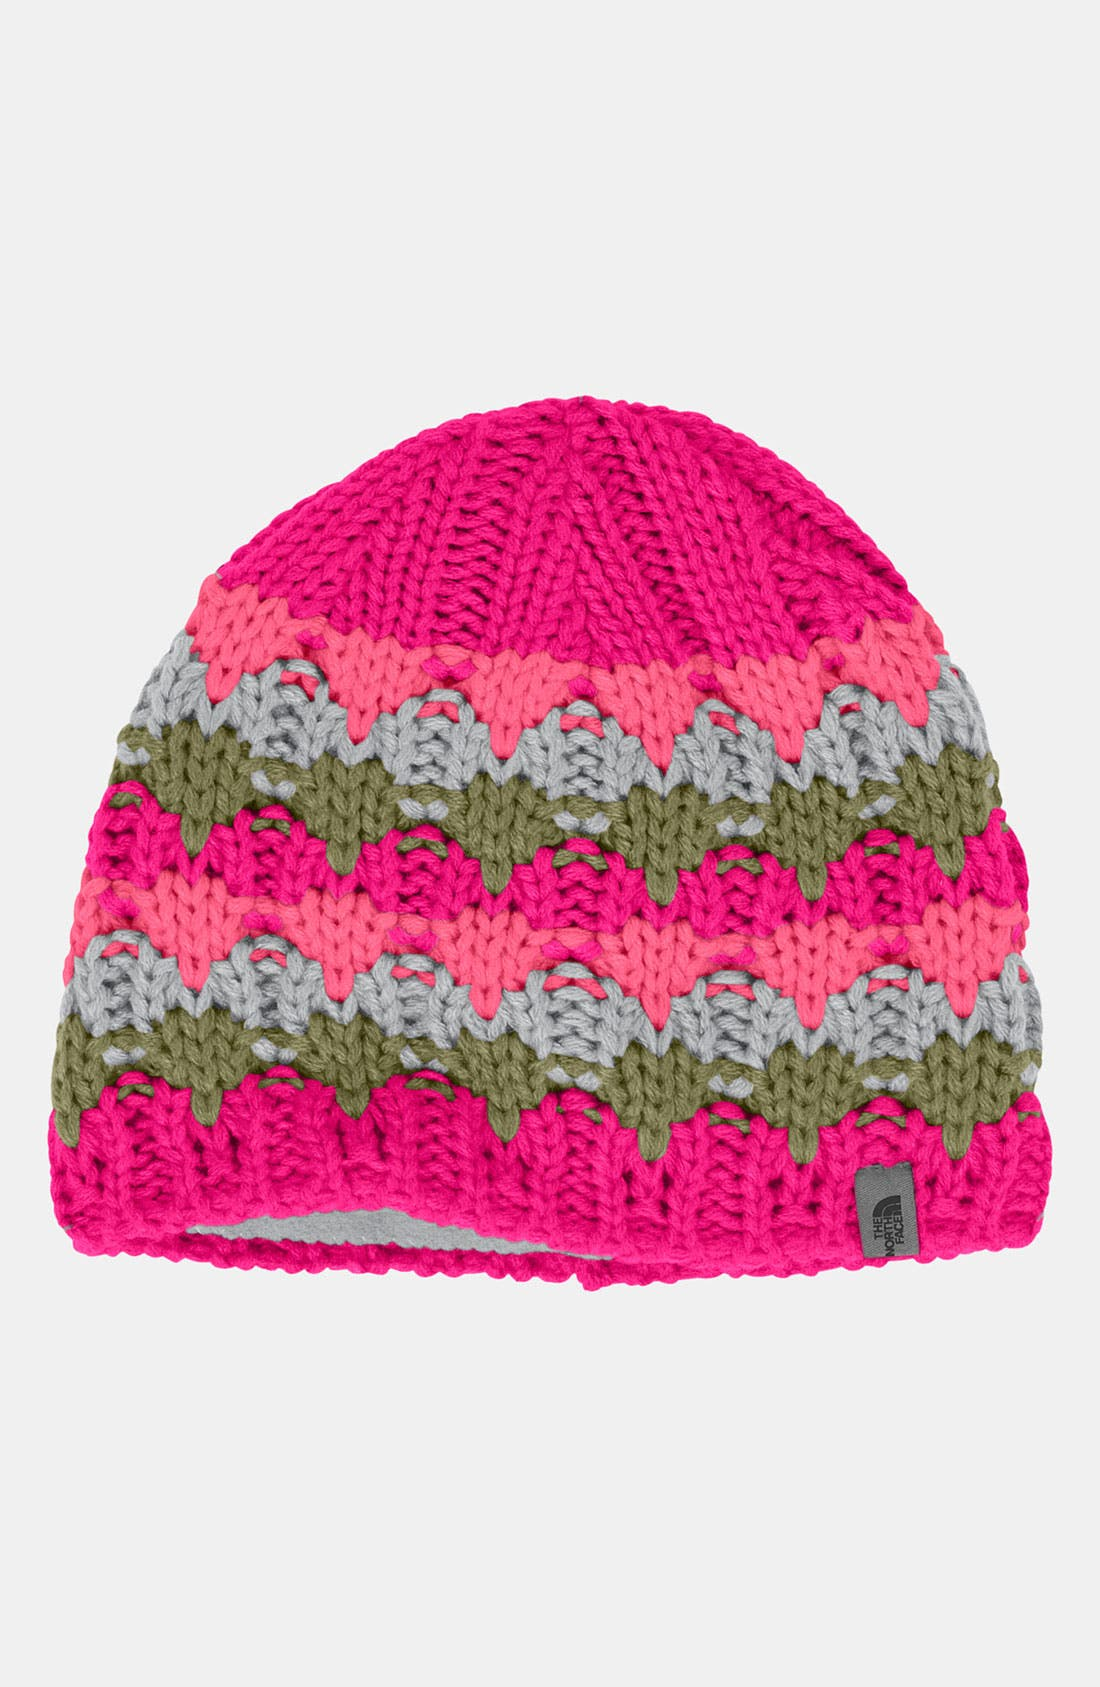 Main Image - The North Face 'Lizzy Bizzy' Beanie (Girls)